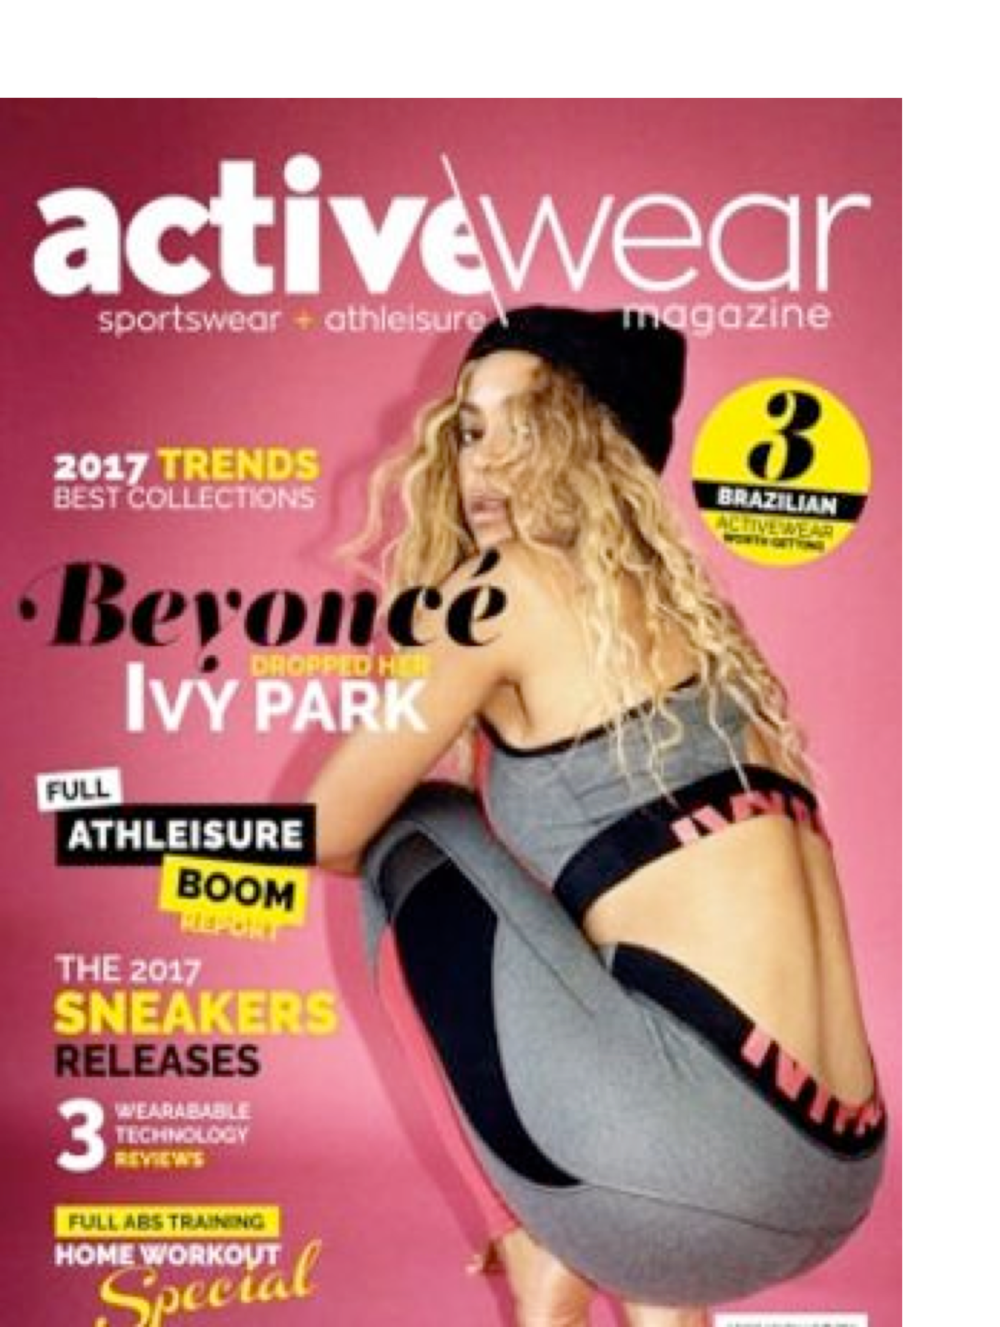 activewear magazine sm